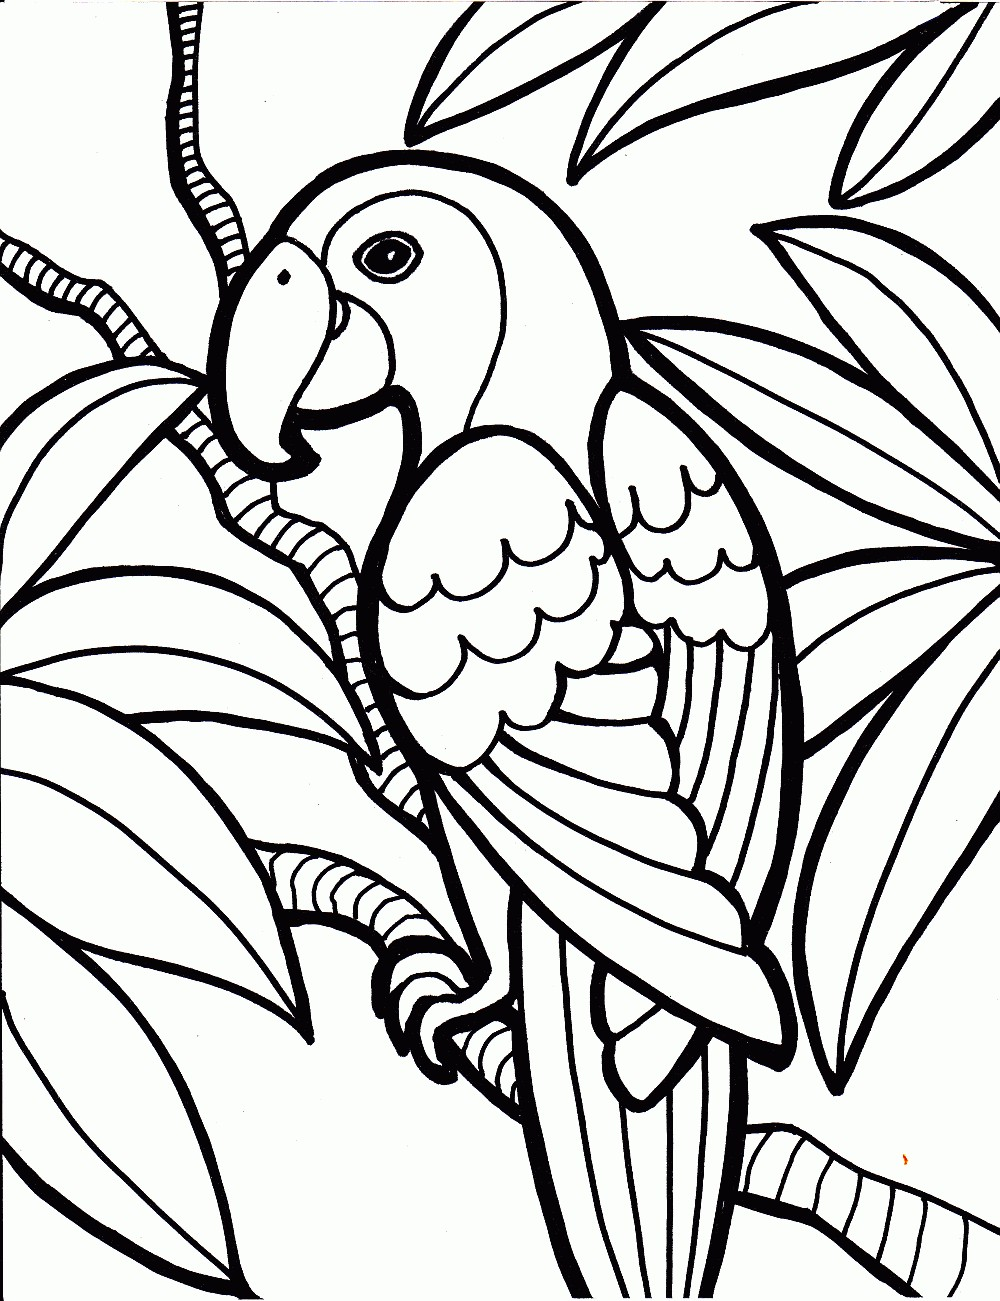 Coloring Pages For Kids Printable : Free printable parrot coloring pages for kids